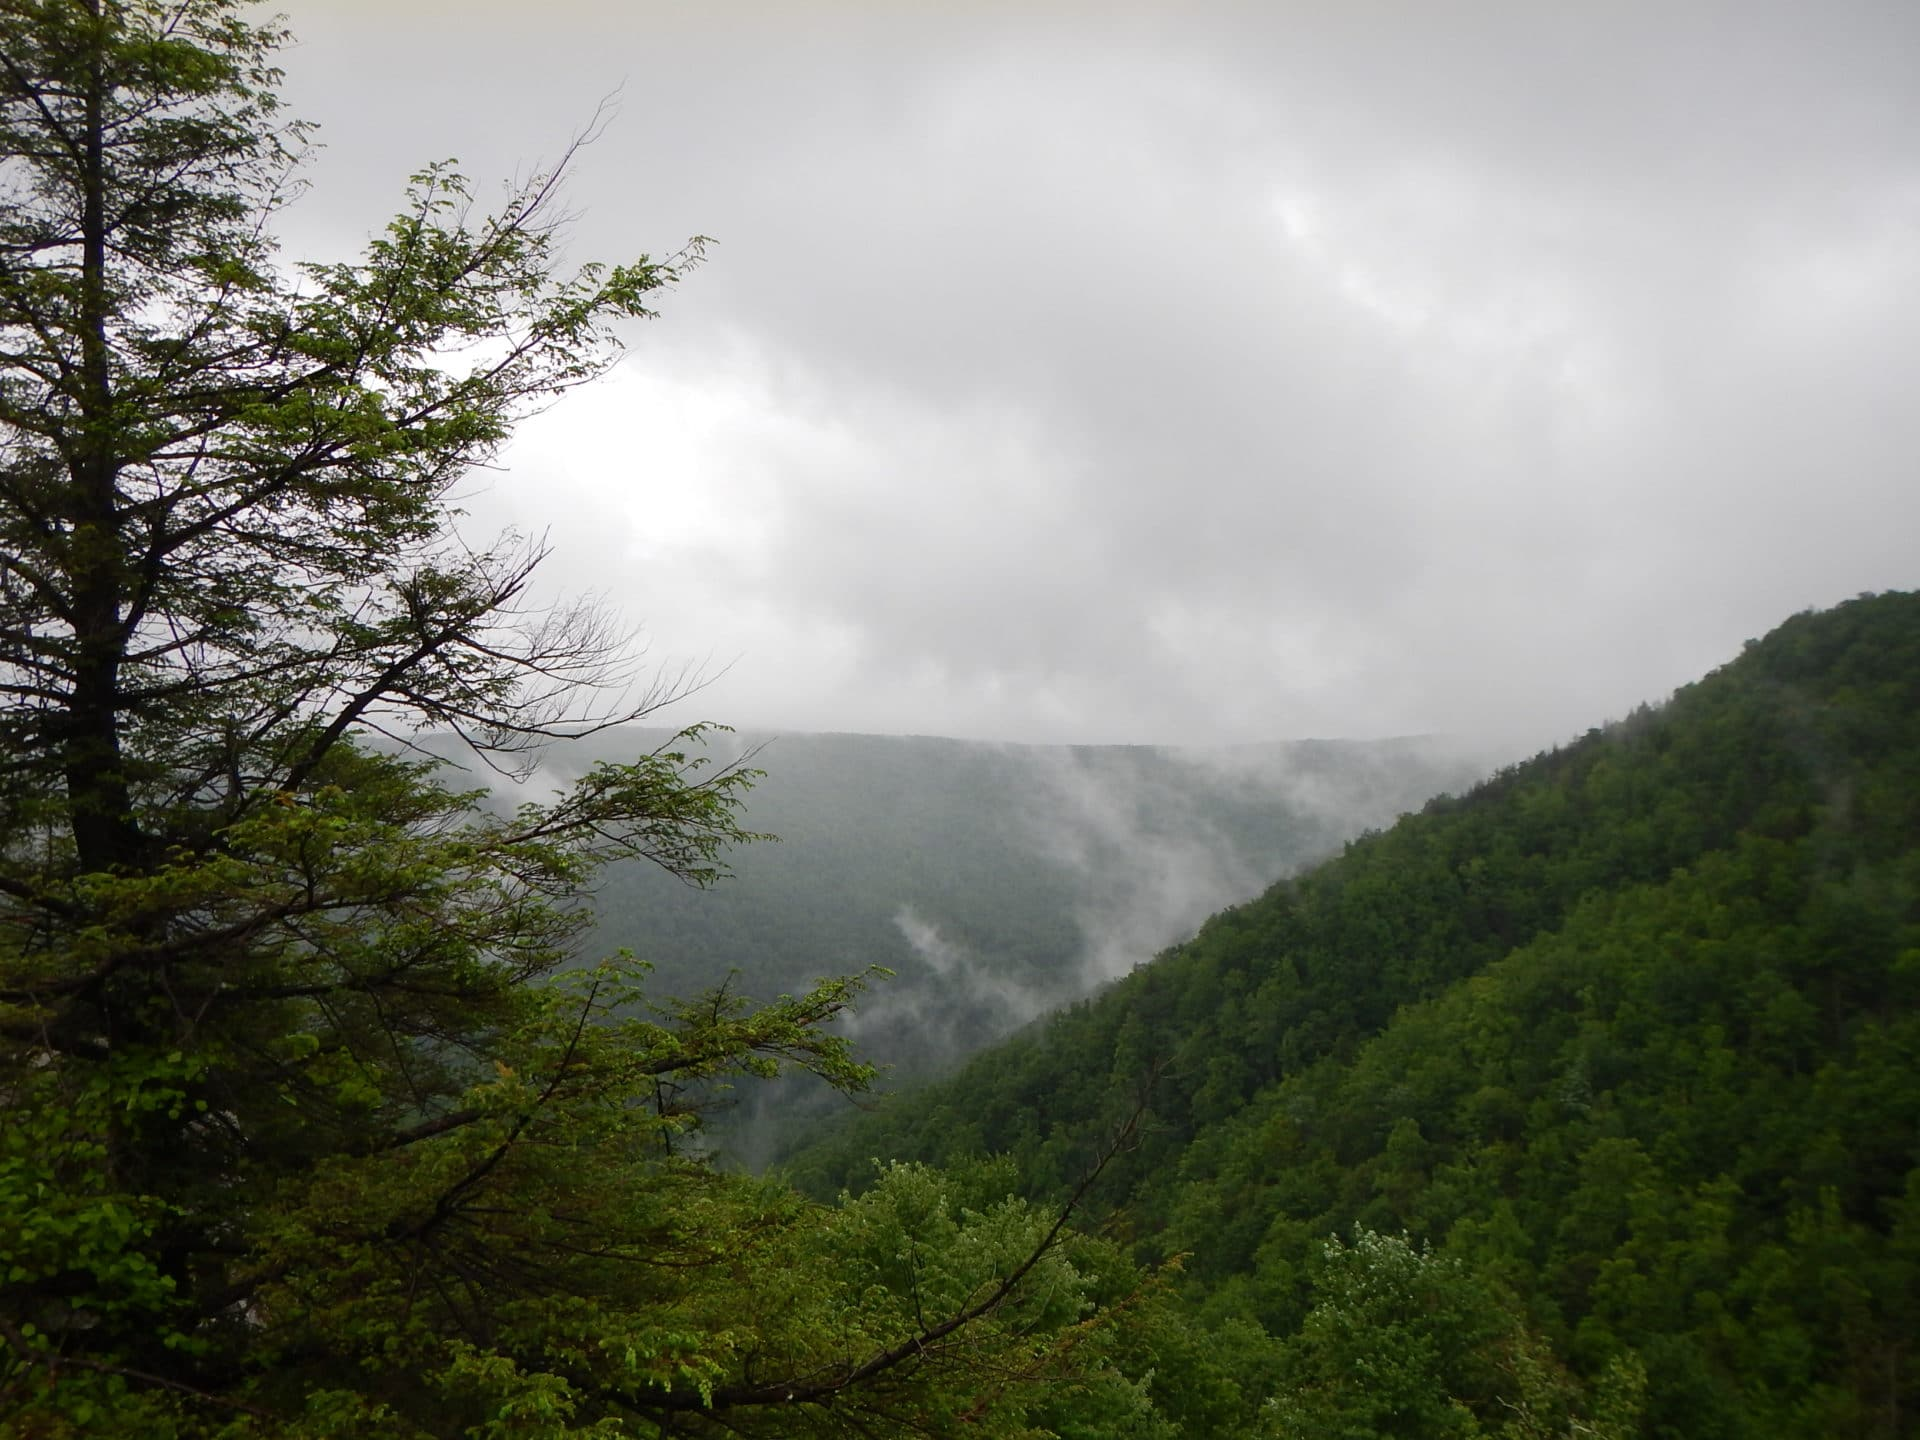 view from Big Run overlook